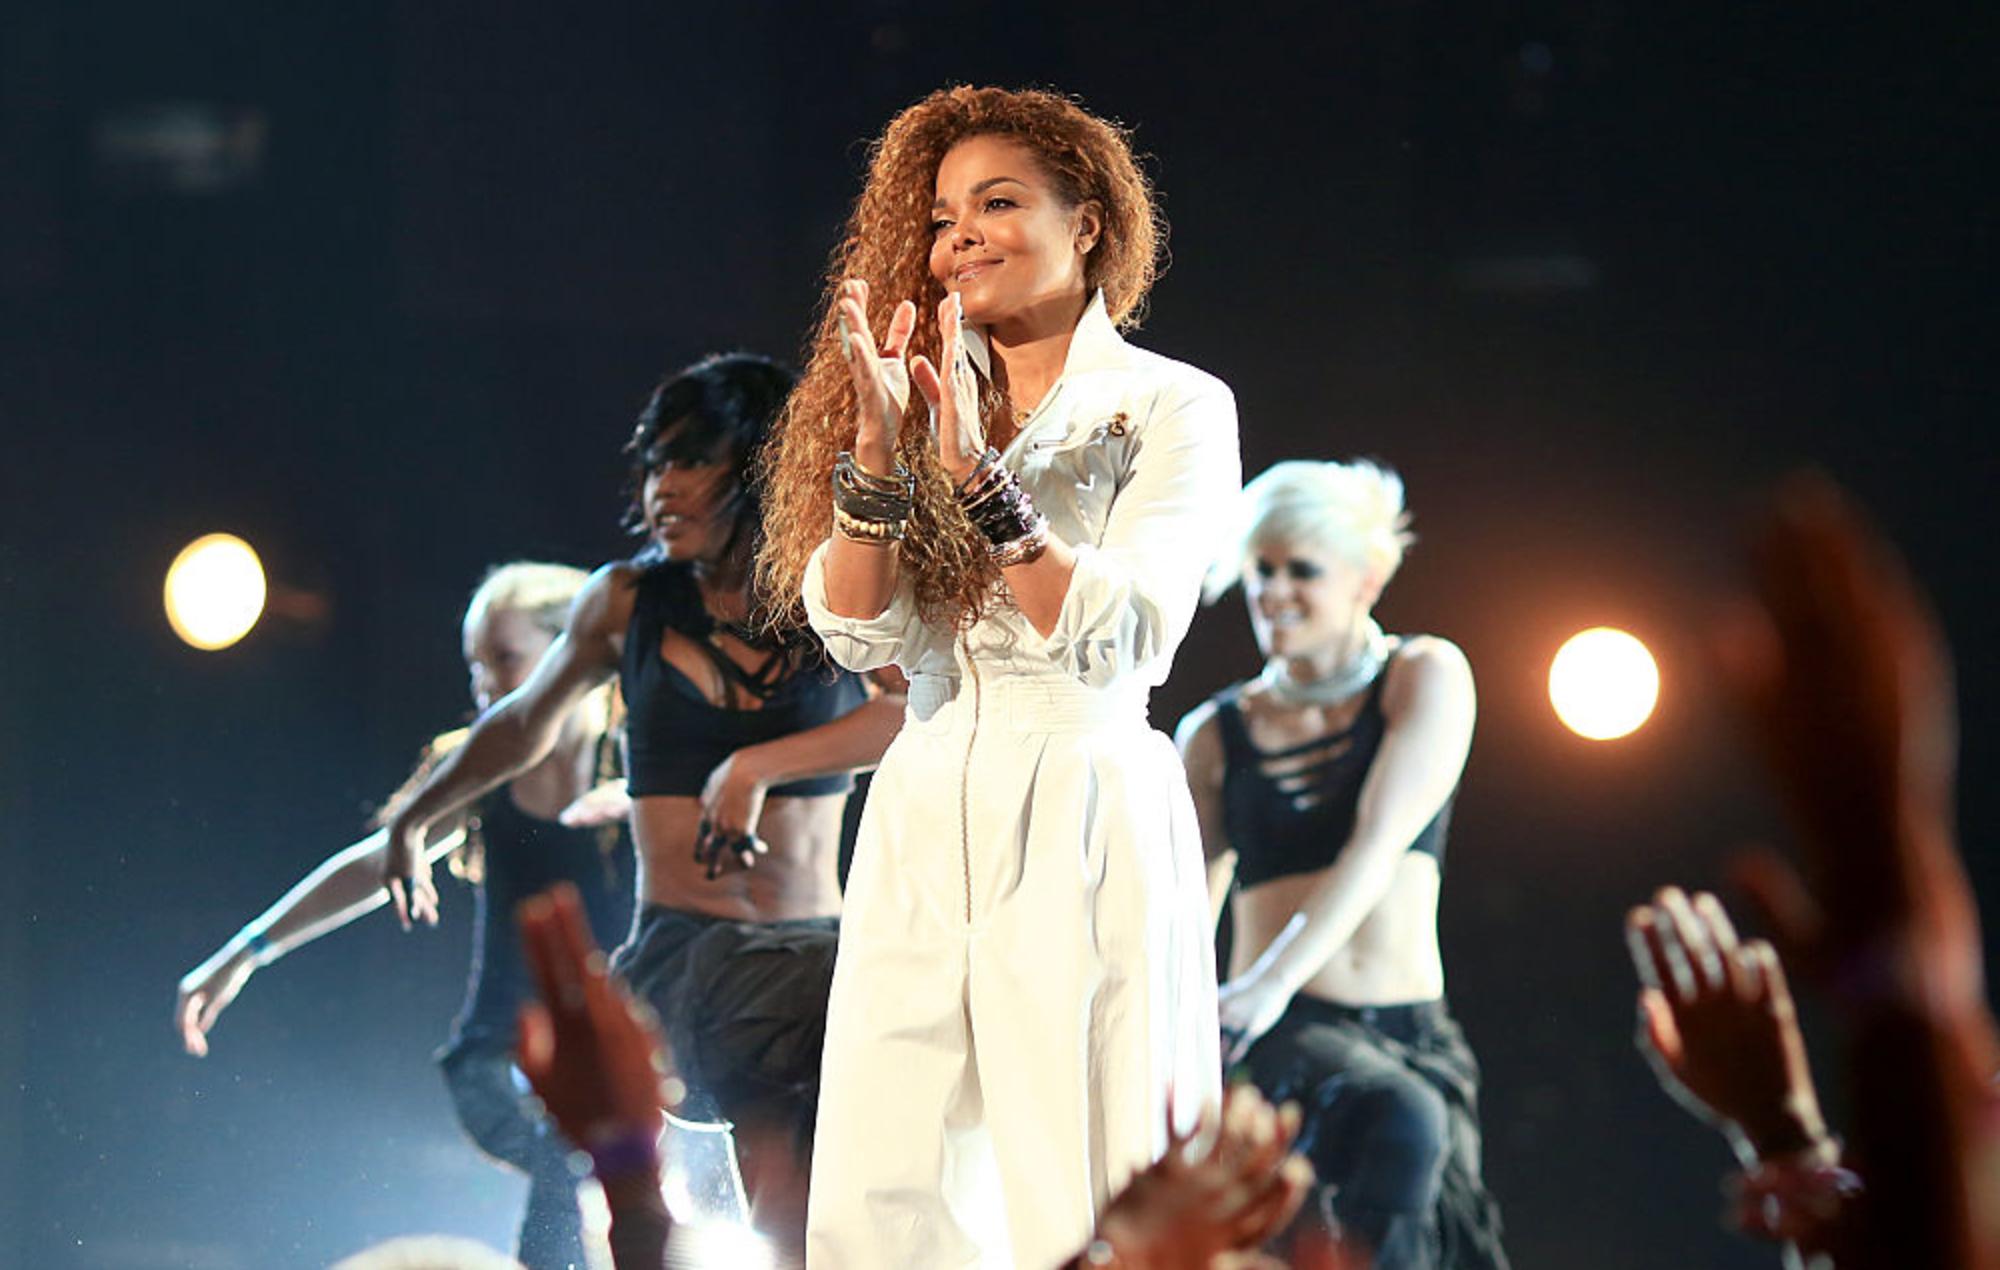 Janet Jackson to sell over 1,000 personal items in celebrity auction